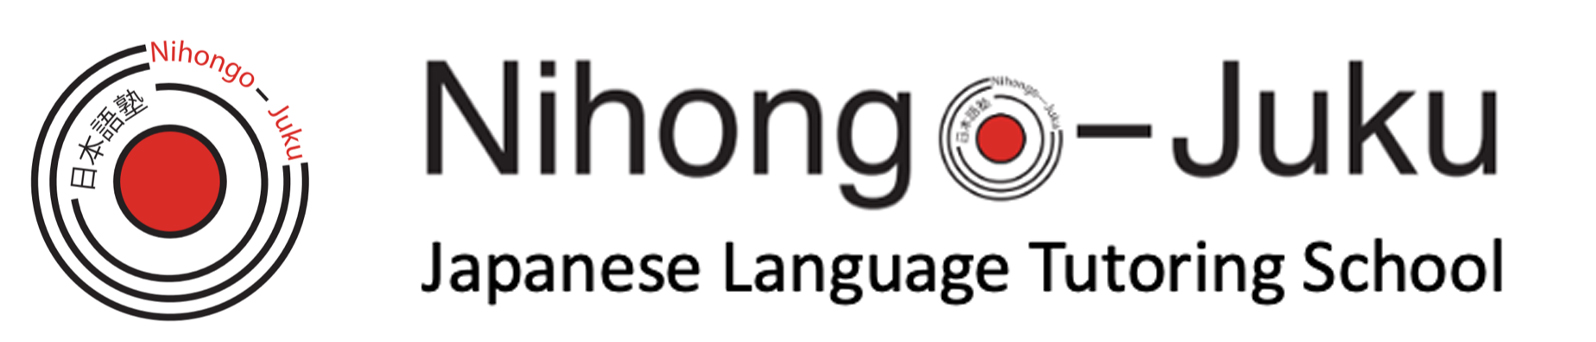 Sydney Japanese Language School